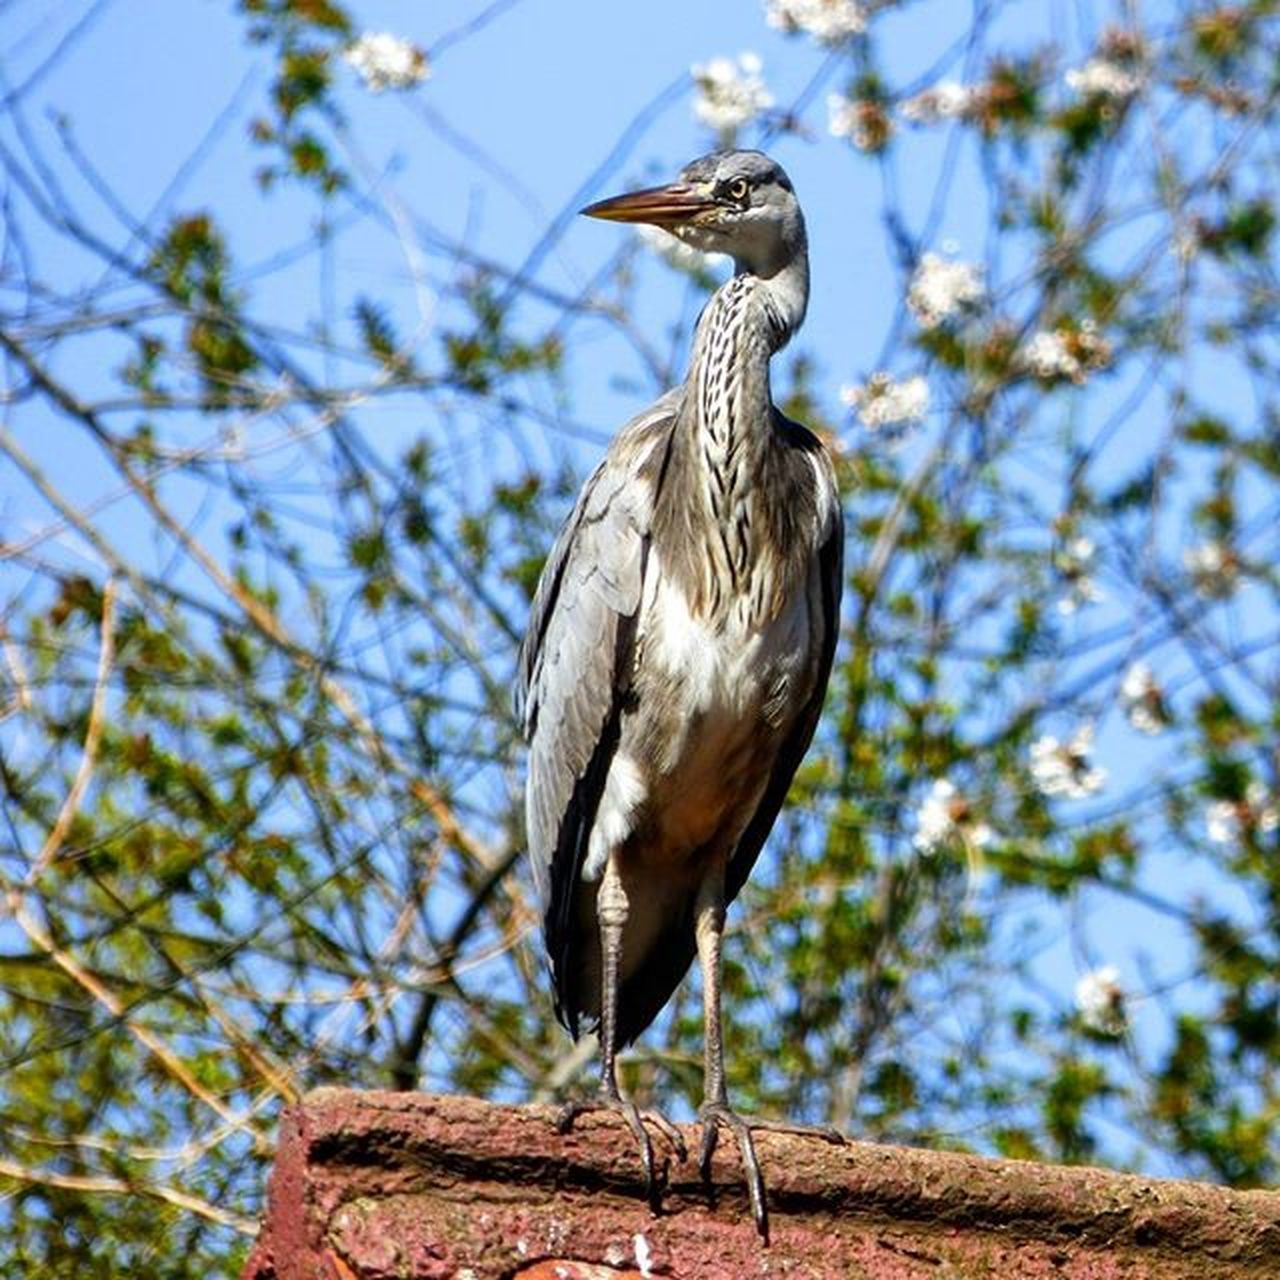 Keeping watch over Stjamespark , London yesterday Heron Nature Photography Uknaturecollective Nature Wild Followme Ig_birdlovers Urbanwildlife Ig_birdwatchers Nuts_about_birds Kings_birds Wildlife Nature England Rsa_nature Ukwildlifeimages Springwatch Lumix Naturehippys